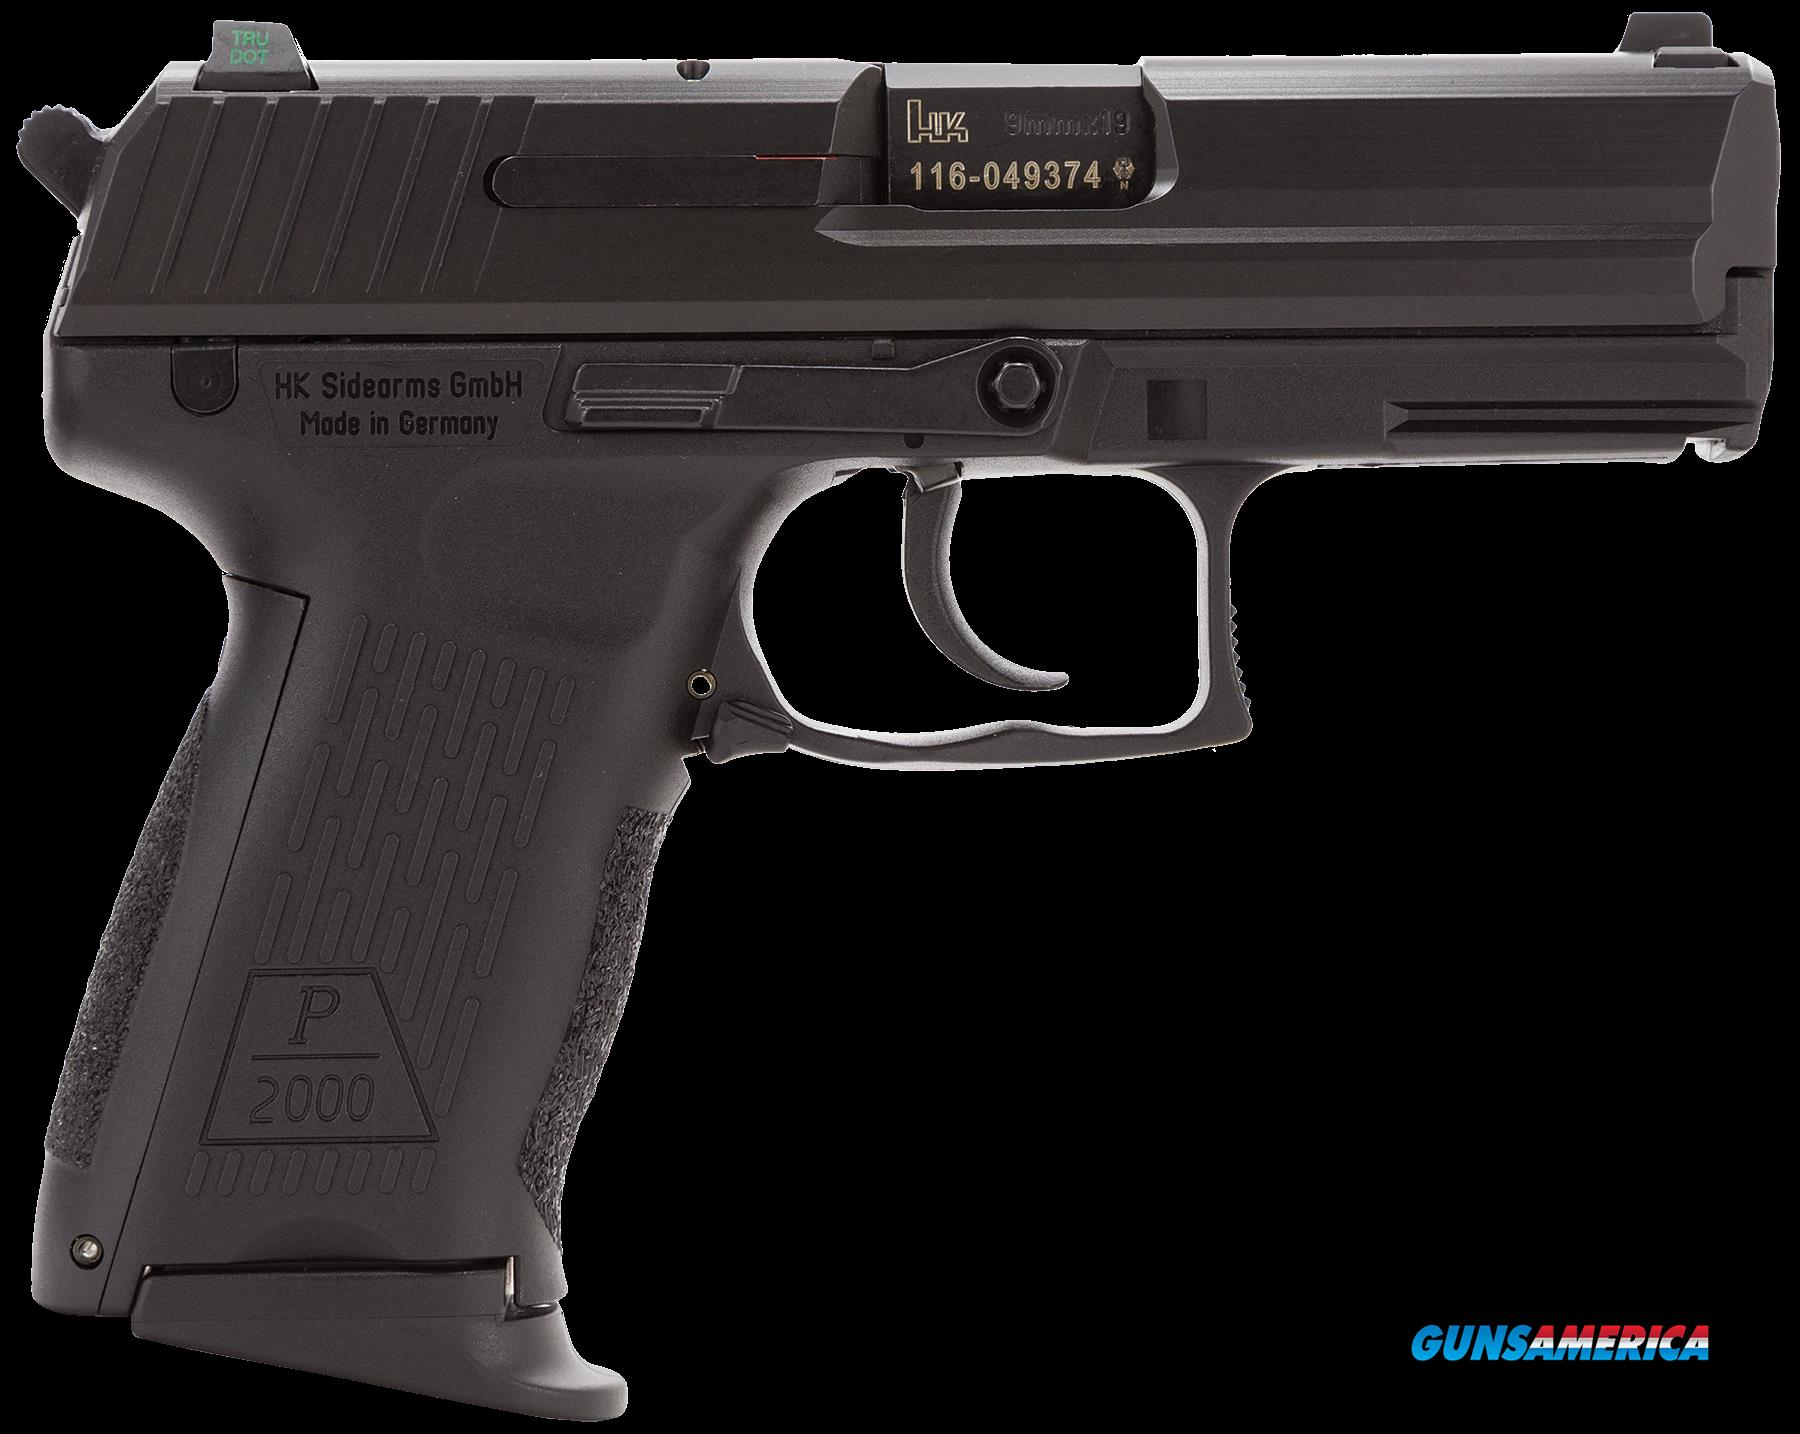 "HK 709203LE-A5 P2000 V3 DA/SA 9mm 3.66"" 13+1 3 Mags NS Black Interchangeable Backstrap Blued  Guns > Pistols > H Misc Pistols"